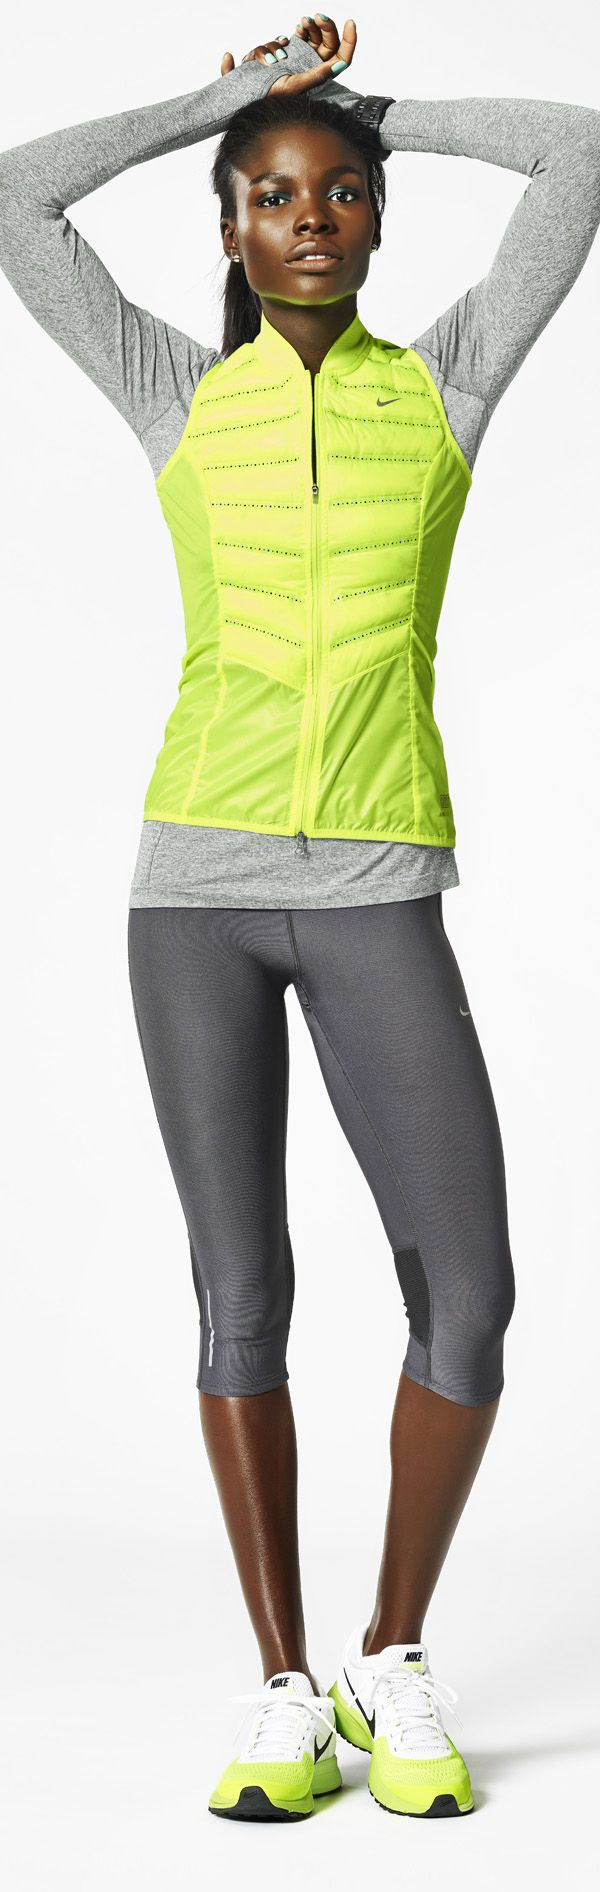 Light up your run. #Nike #running #style